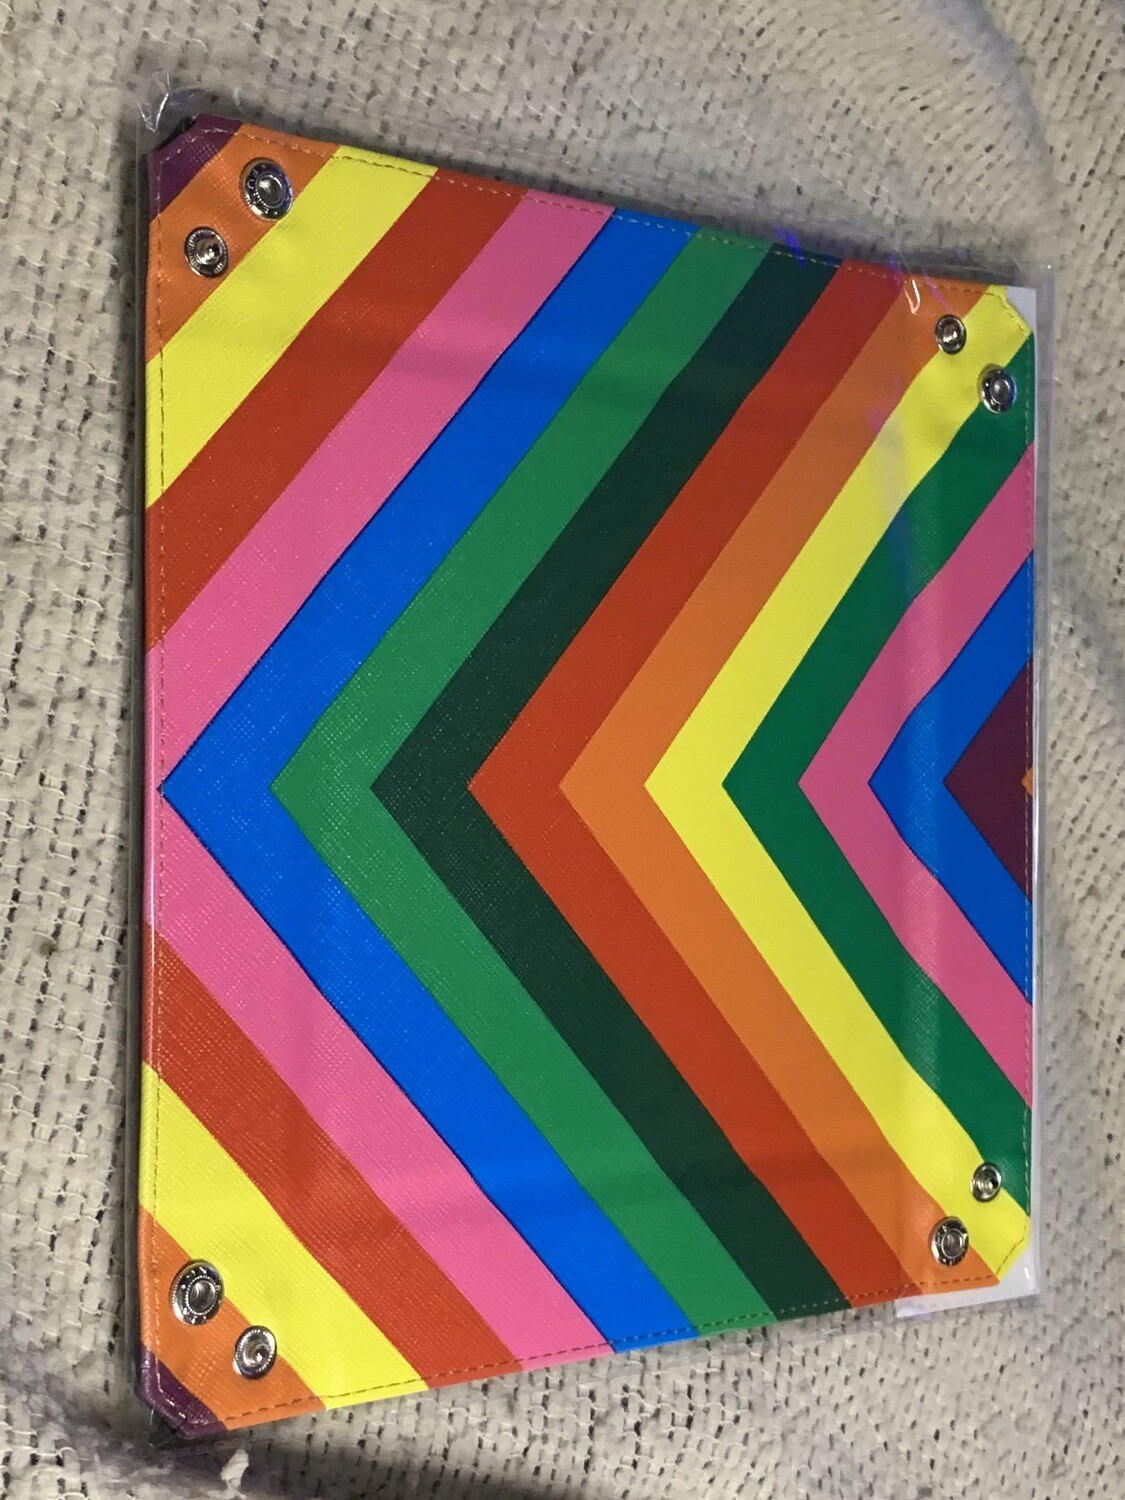 Rainbow Dice Tray With Leather Backing RPG Tabletop Gaming Roleplay